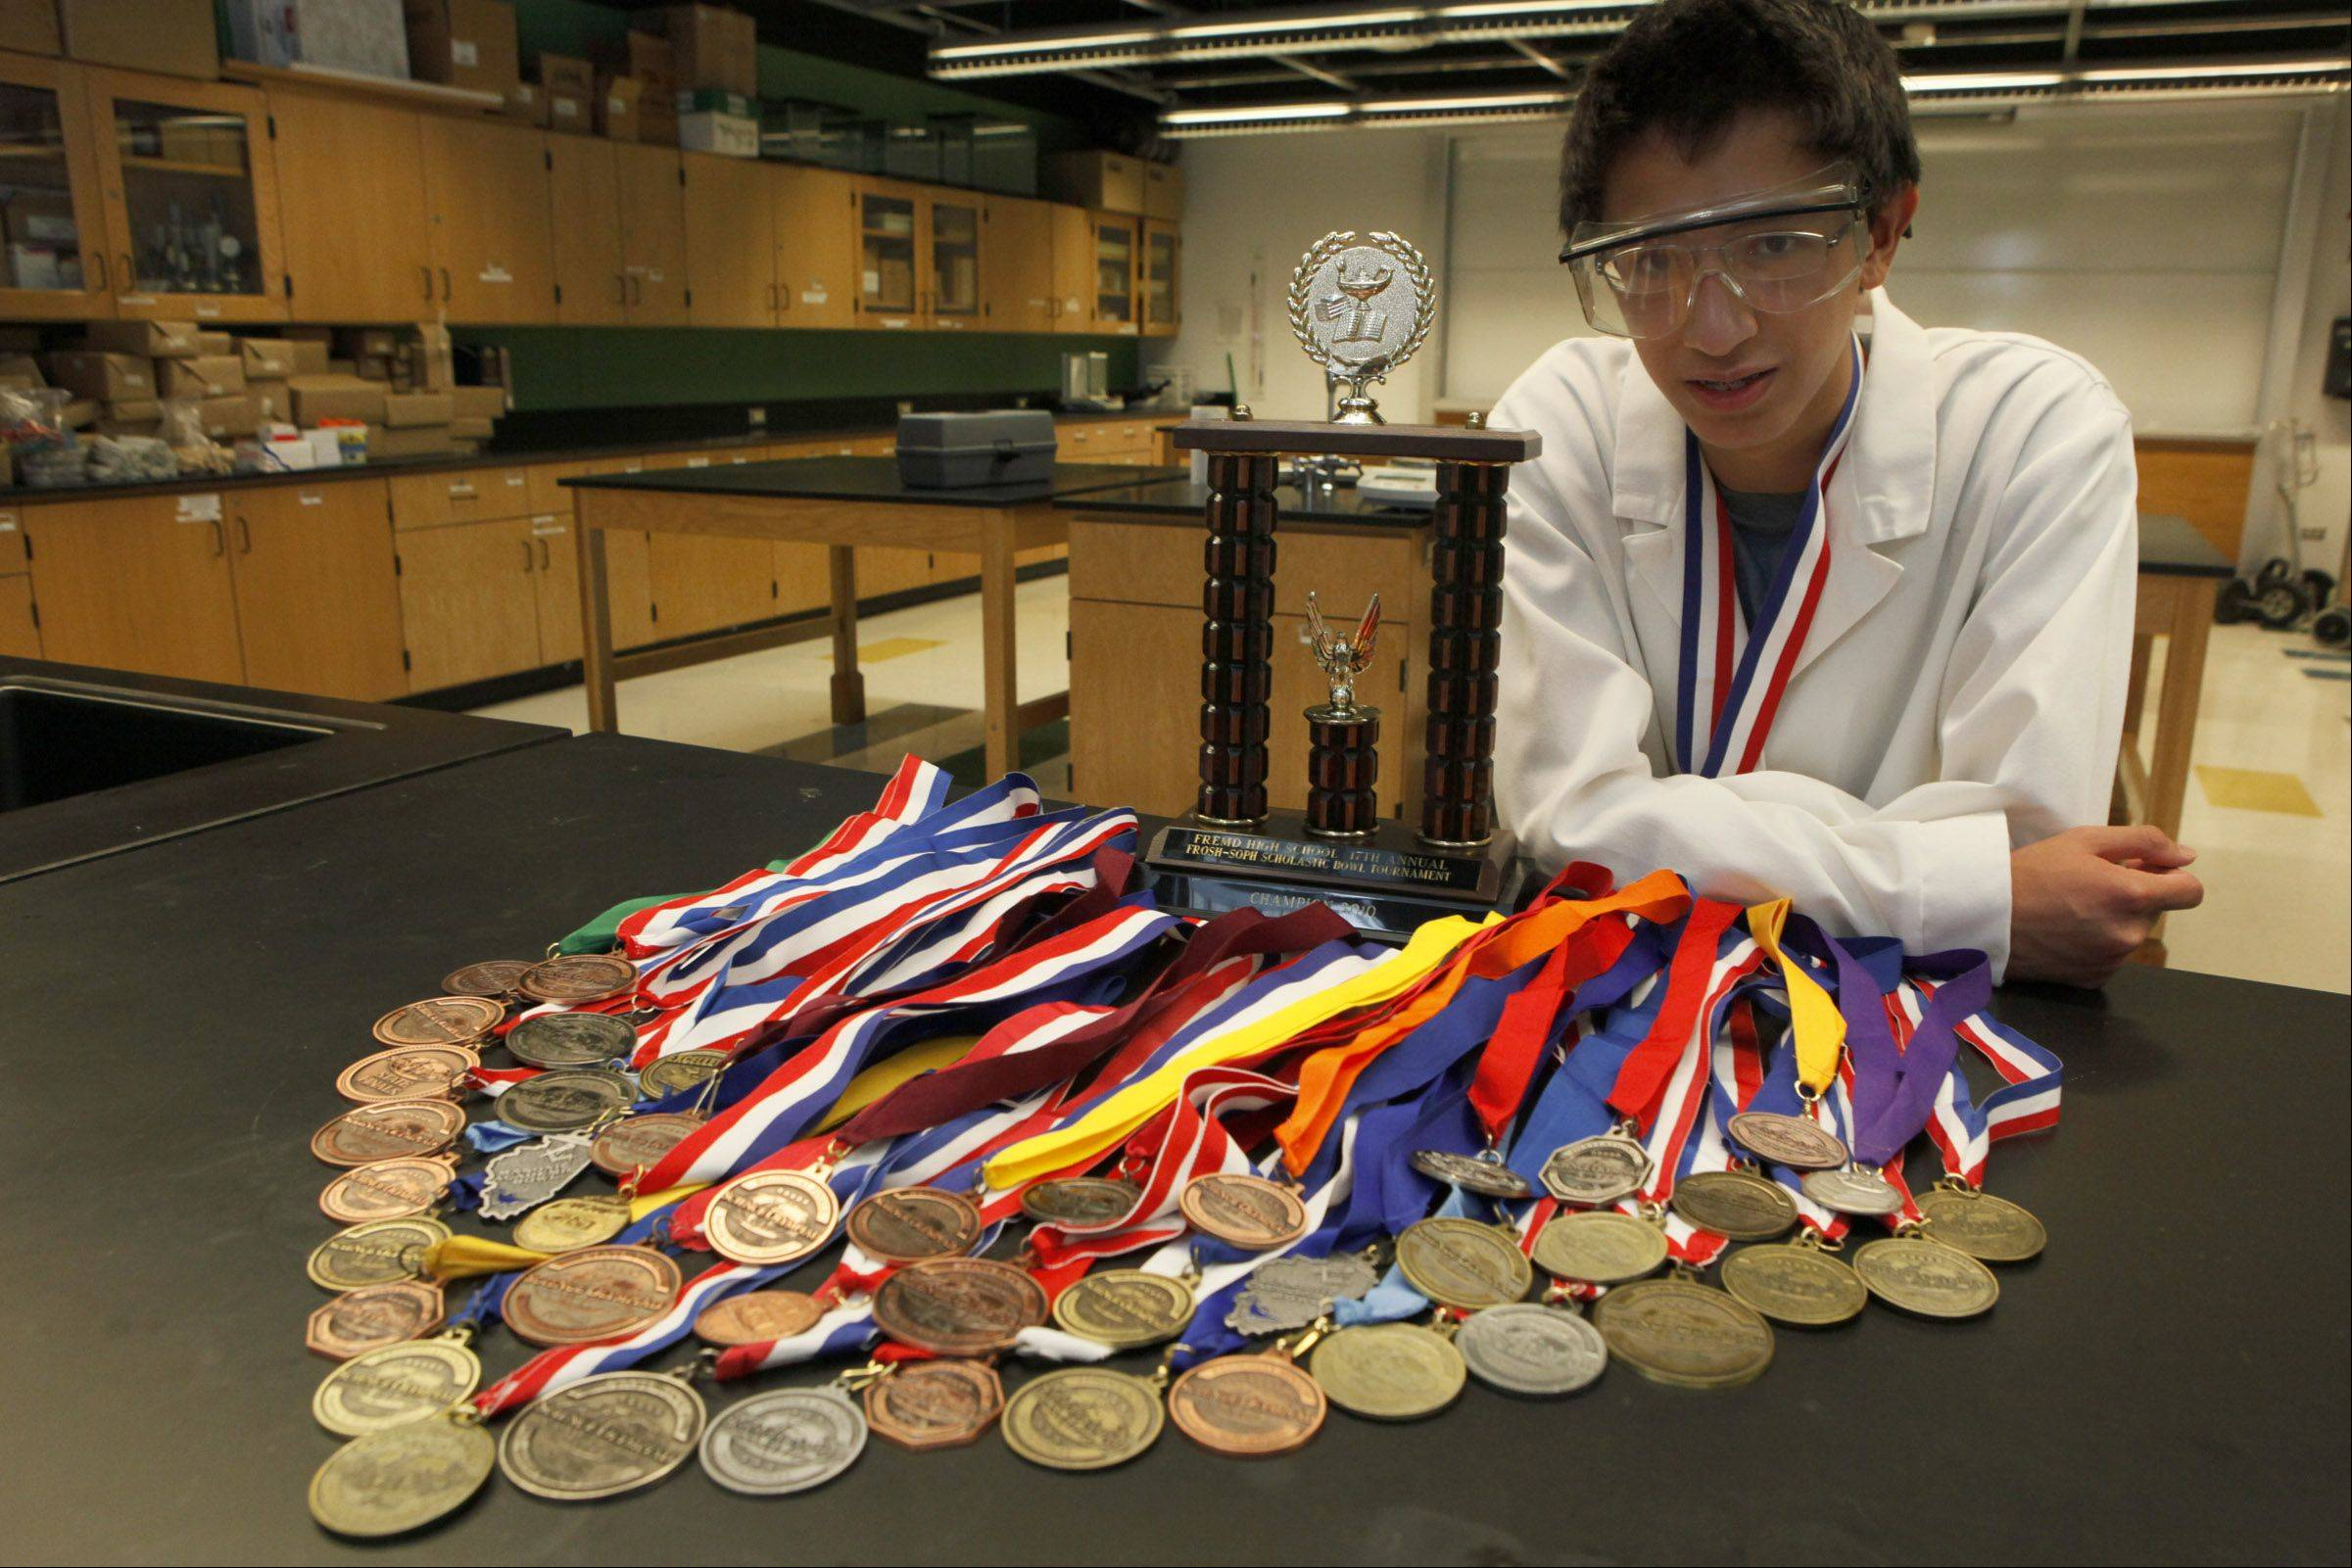 Nolan Maloney of Naperville, an incoming senior at the Illinois Mathematics and Science Academy, shows off the 44 science medals he's won since junior high school. Nolan was one of 20 semifinalists for the U.S. chemistry team this year.